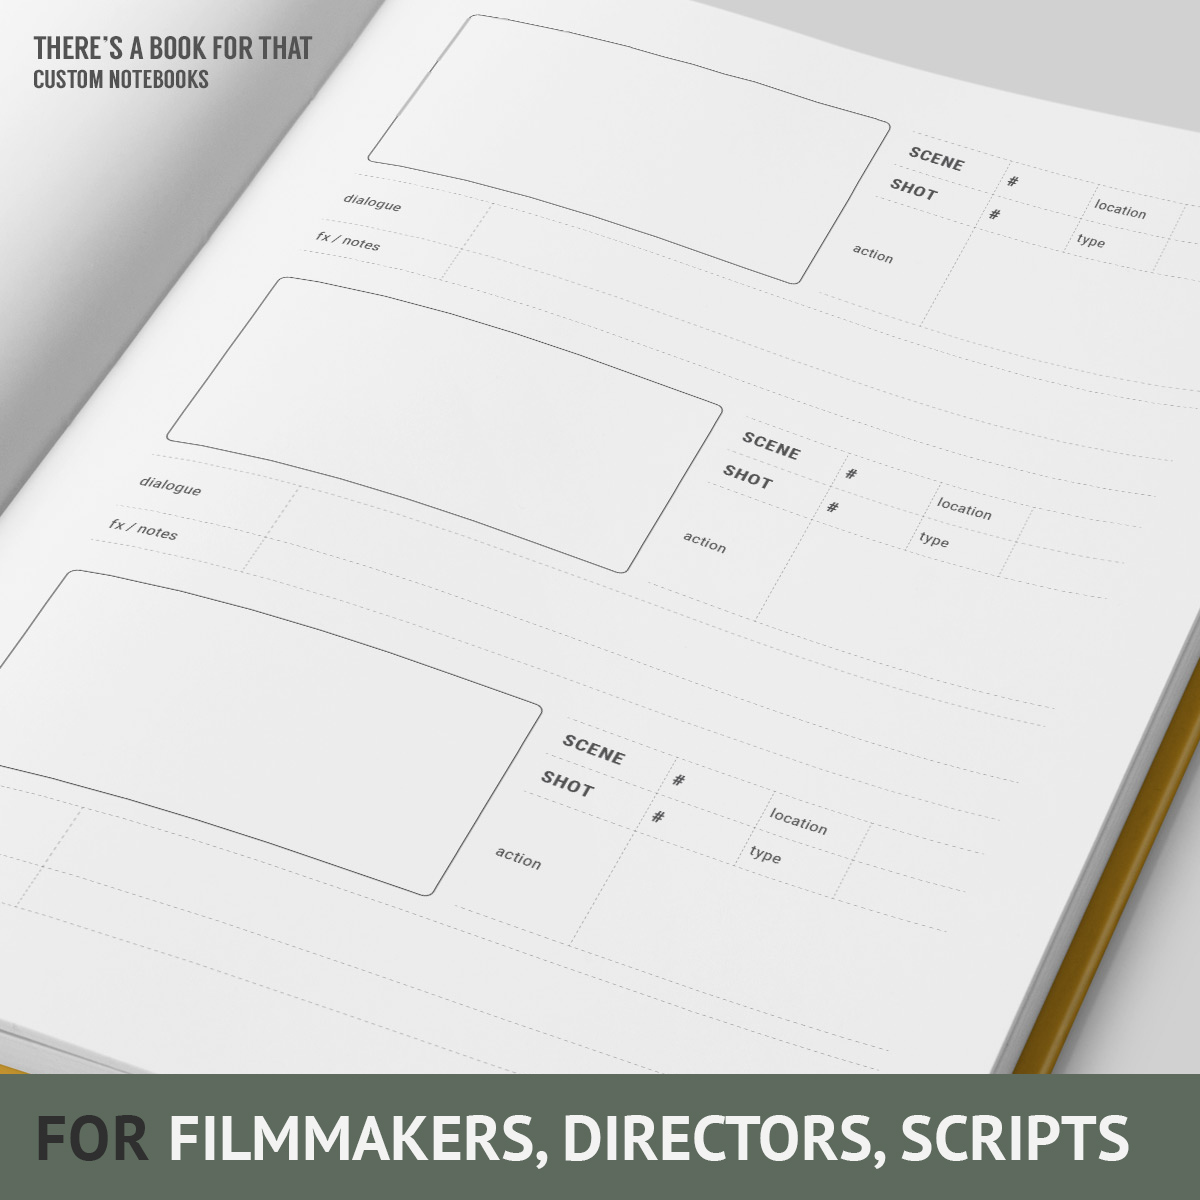 A storyboard notebook containing a storyboard layout with structured info about the project, en detail, sketch areas (thumbnails) including space for scene/shot/action/dialogue and fx notes. You will love this notebook for filmmakers and directors.